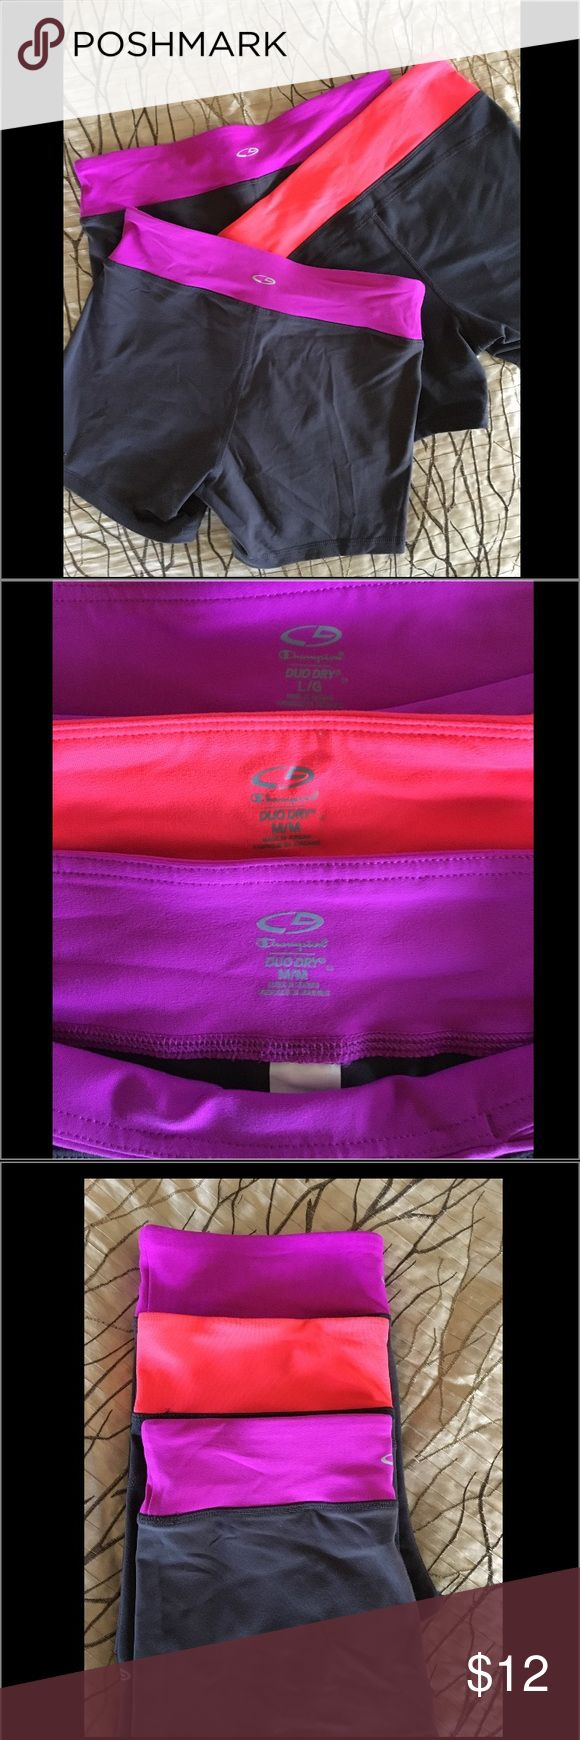 3 pair of Champion Duo Dry athletic shorts. Price is for all three! Red-ish pair have slightly different content then the purple. Shorts